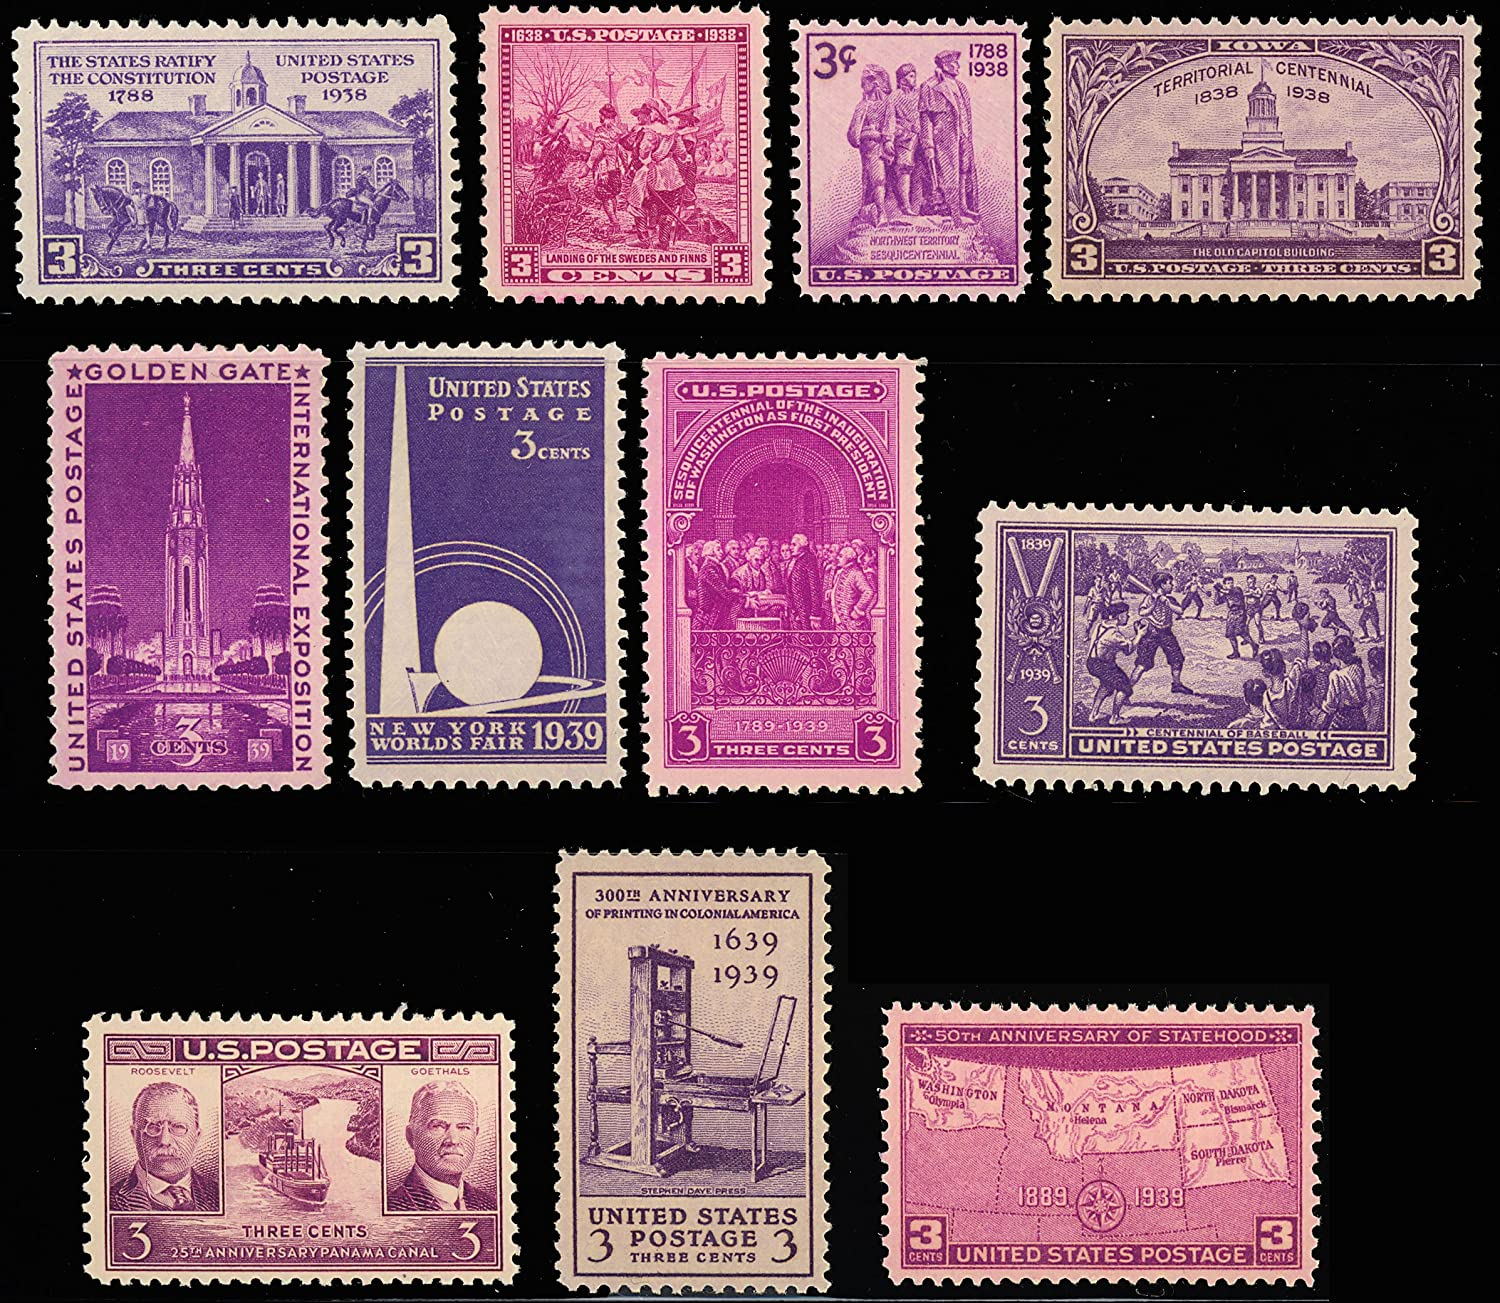 Amazon 1938 1939 Year Set Of Eleven Commemorative Stamps Mint NH By USPS Everything Else